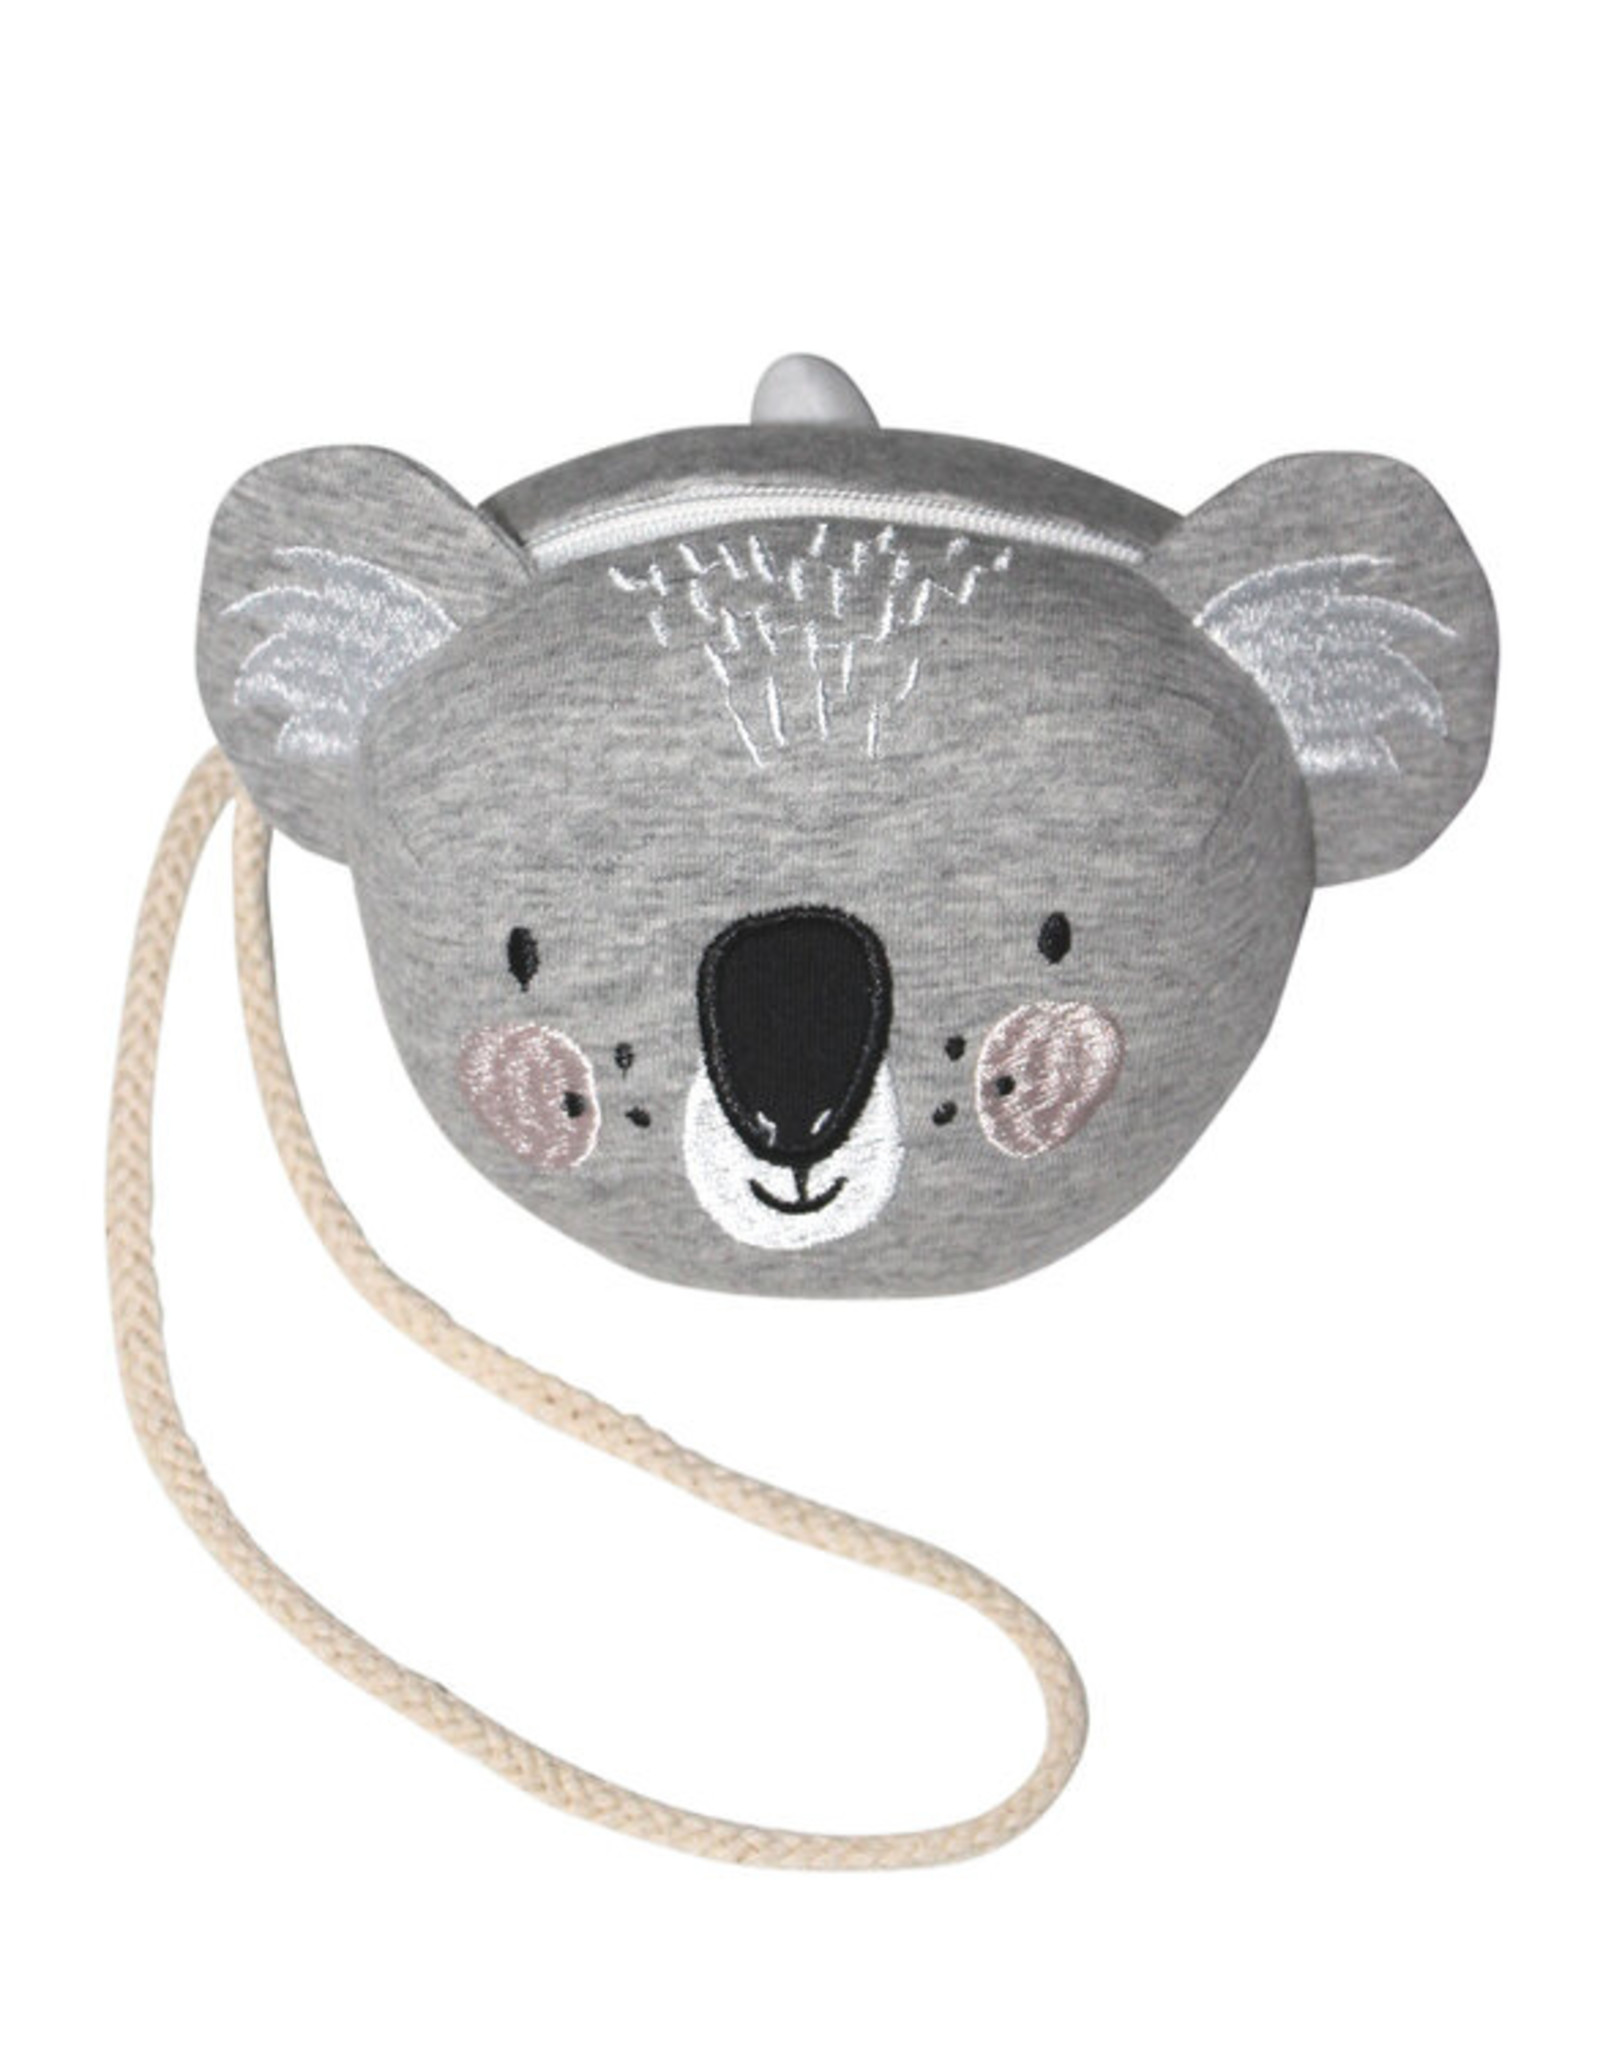 Mister Fly Mister Fly Cross Body Bag - Koala